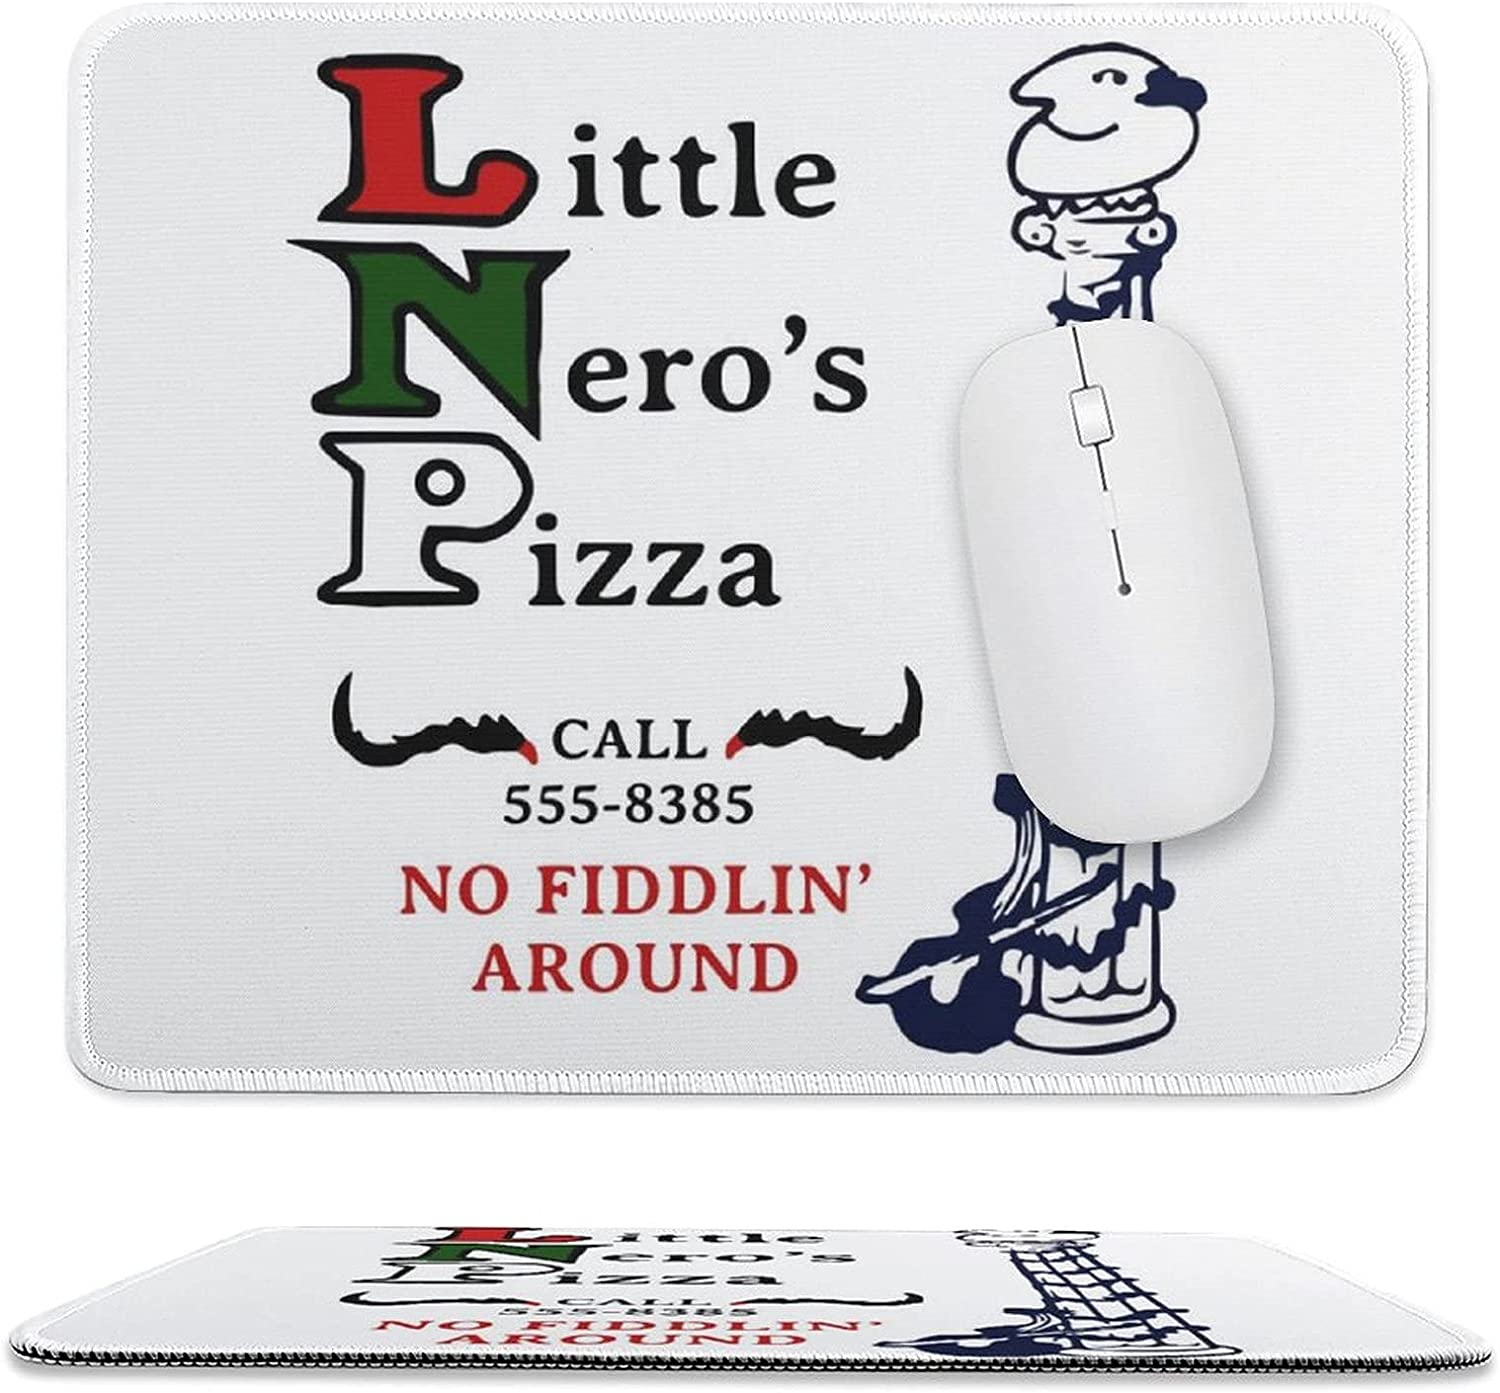 Little Neros Pizza Home Alone Customizable Mouse pad, Edge Stitching Design, Rubber Non-Slip Bottom, Dirt-Resistant and Durable, Large Size (11.8 x9.8 inches)